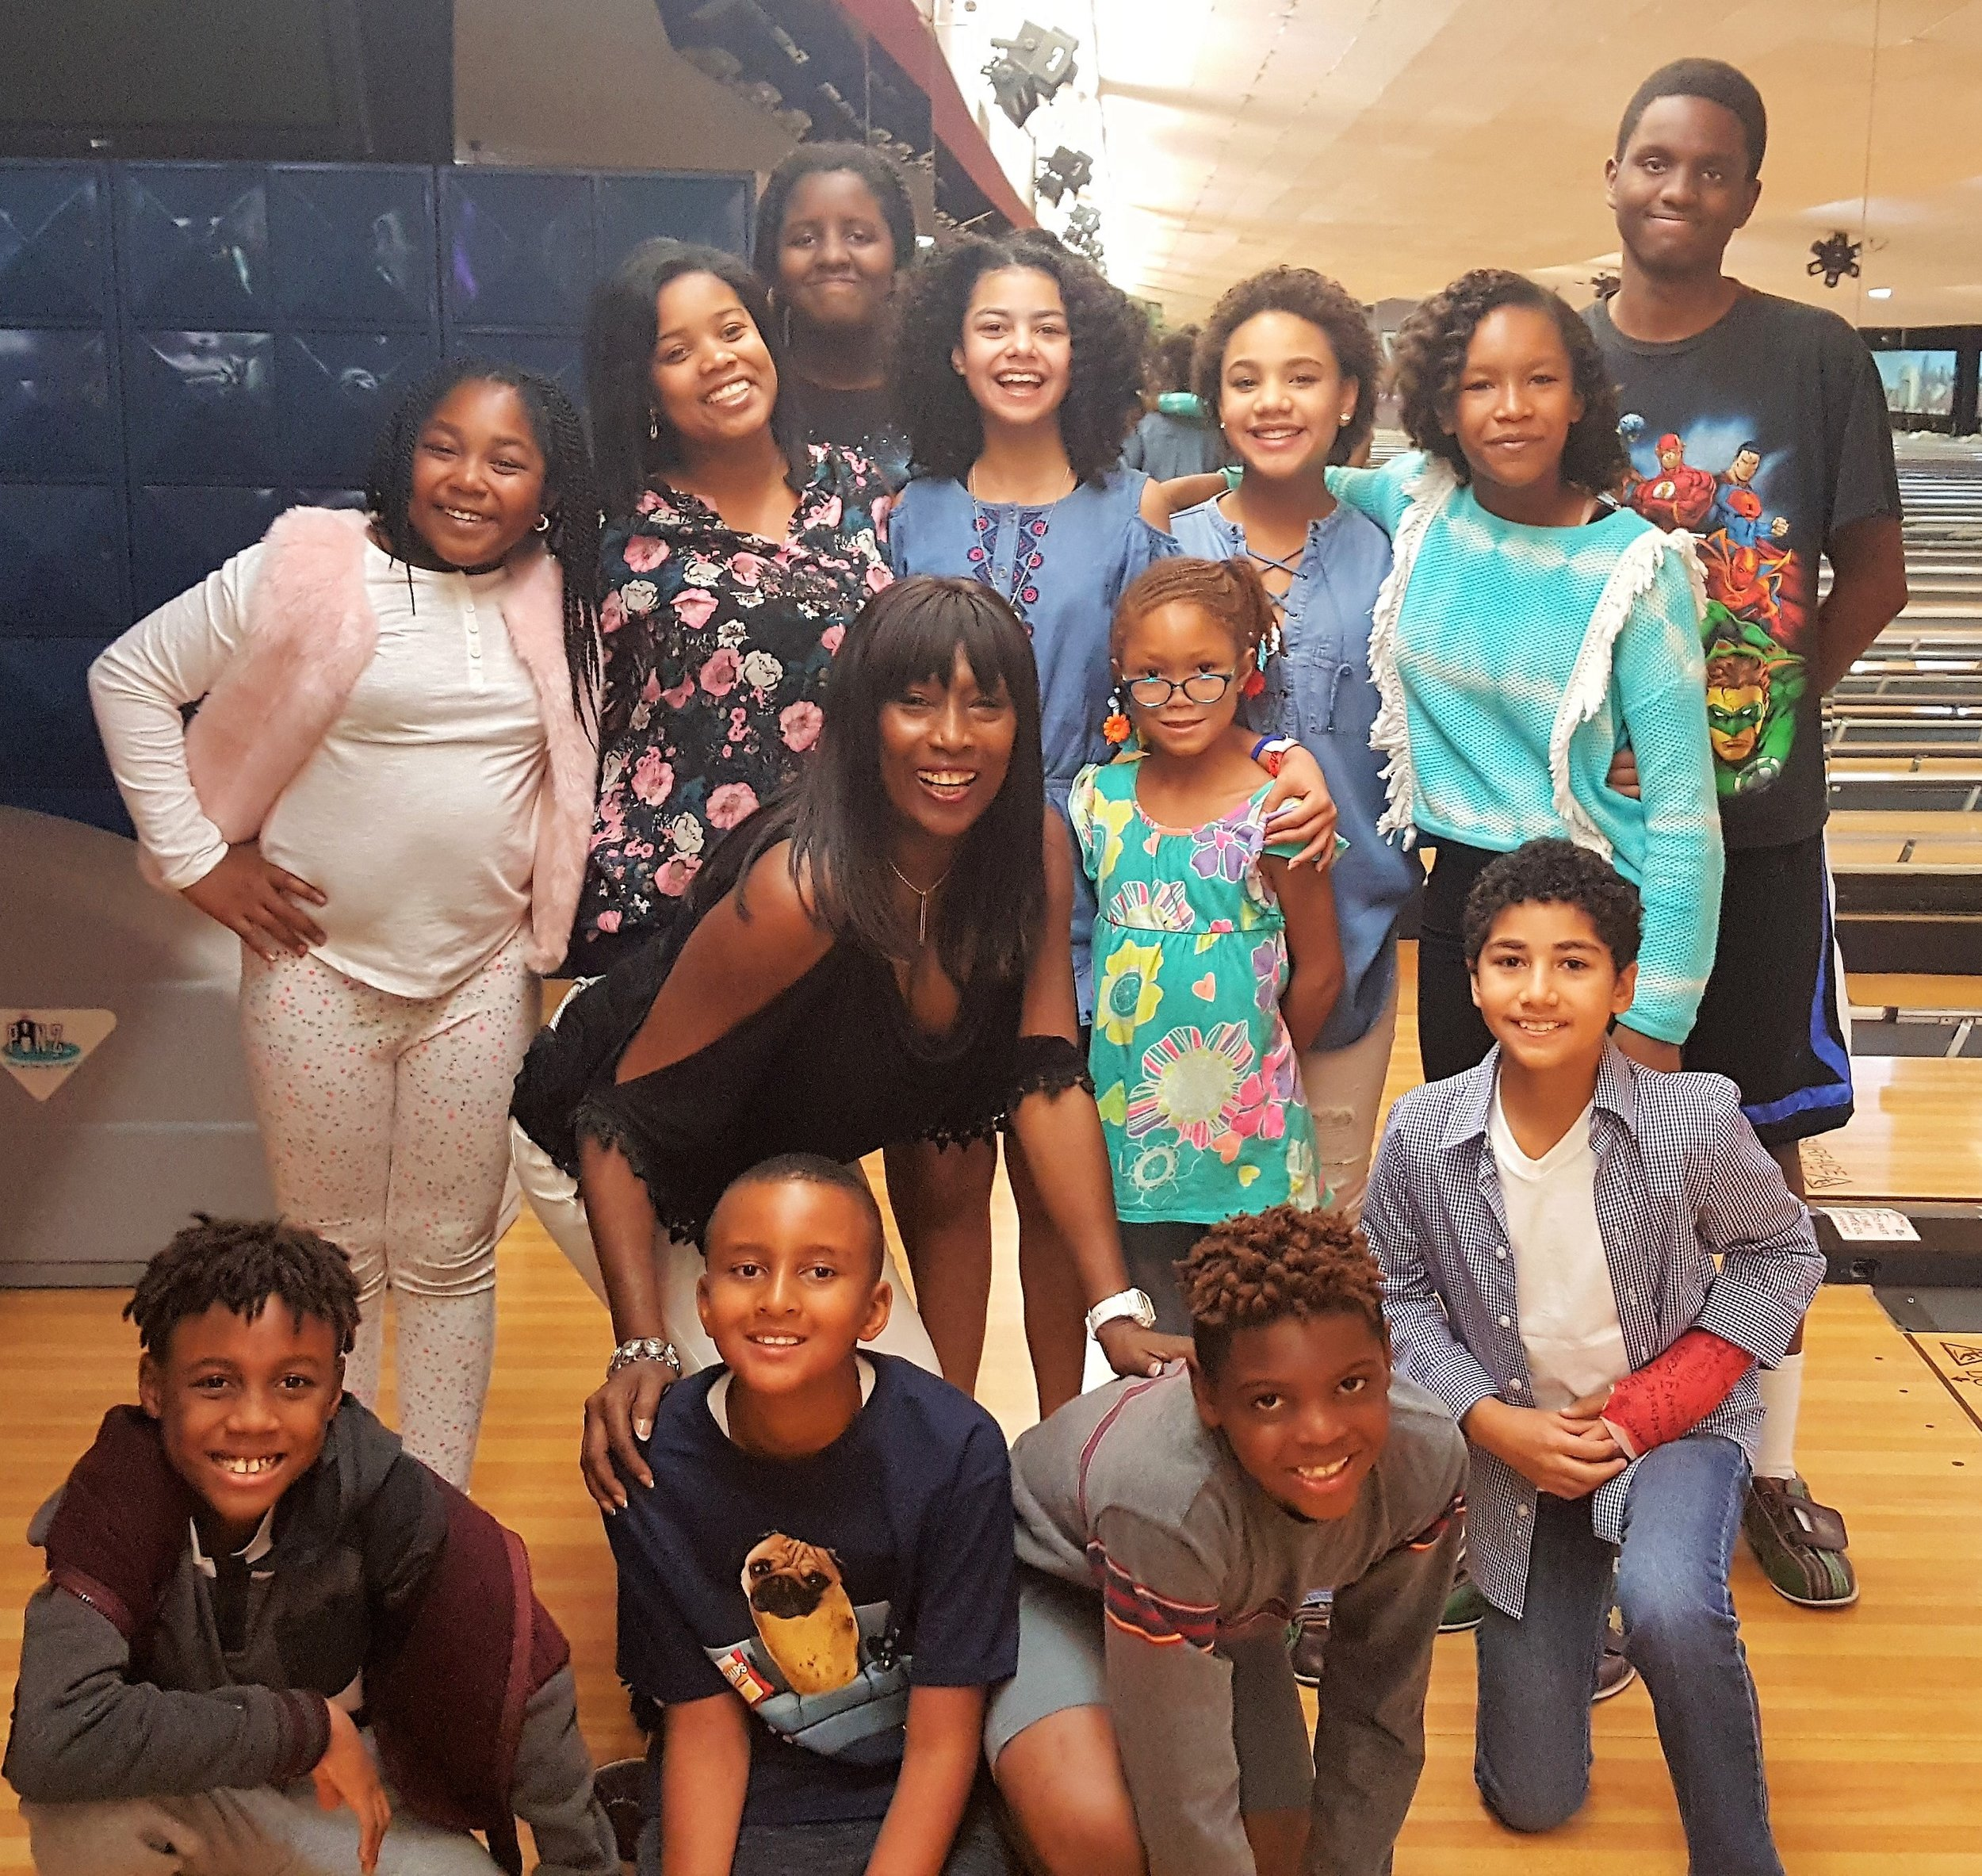 Our Day of Play included an afternoon of joy, laughter, food, games and bowling. - We were joined by child actors: Jessica Mikayla Adams, Journey Slayton, Jillian Estell, Angelina Sinclair, and Anderson Slayton.